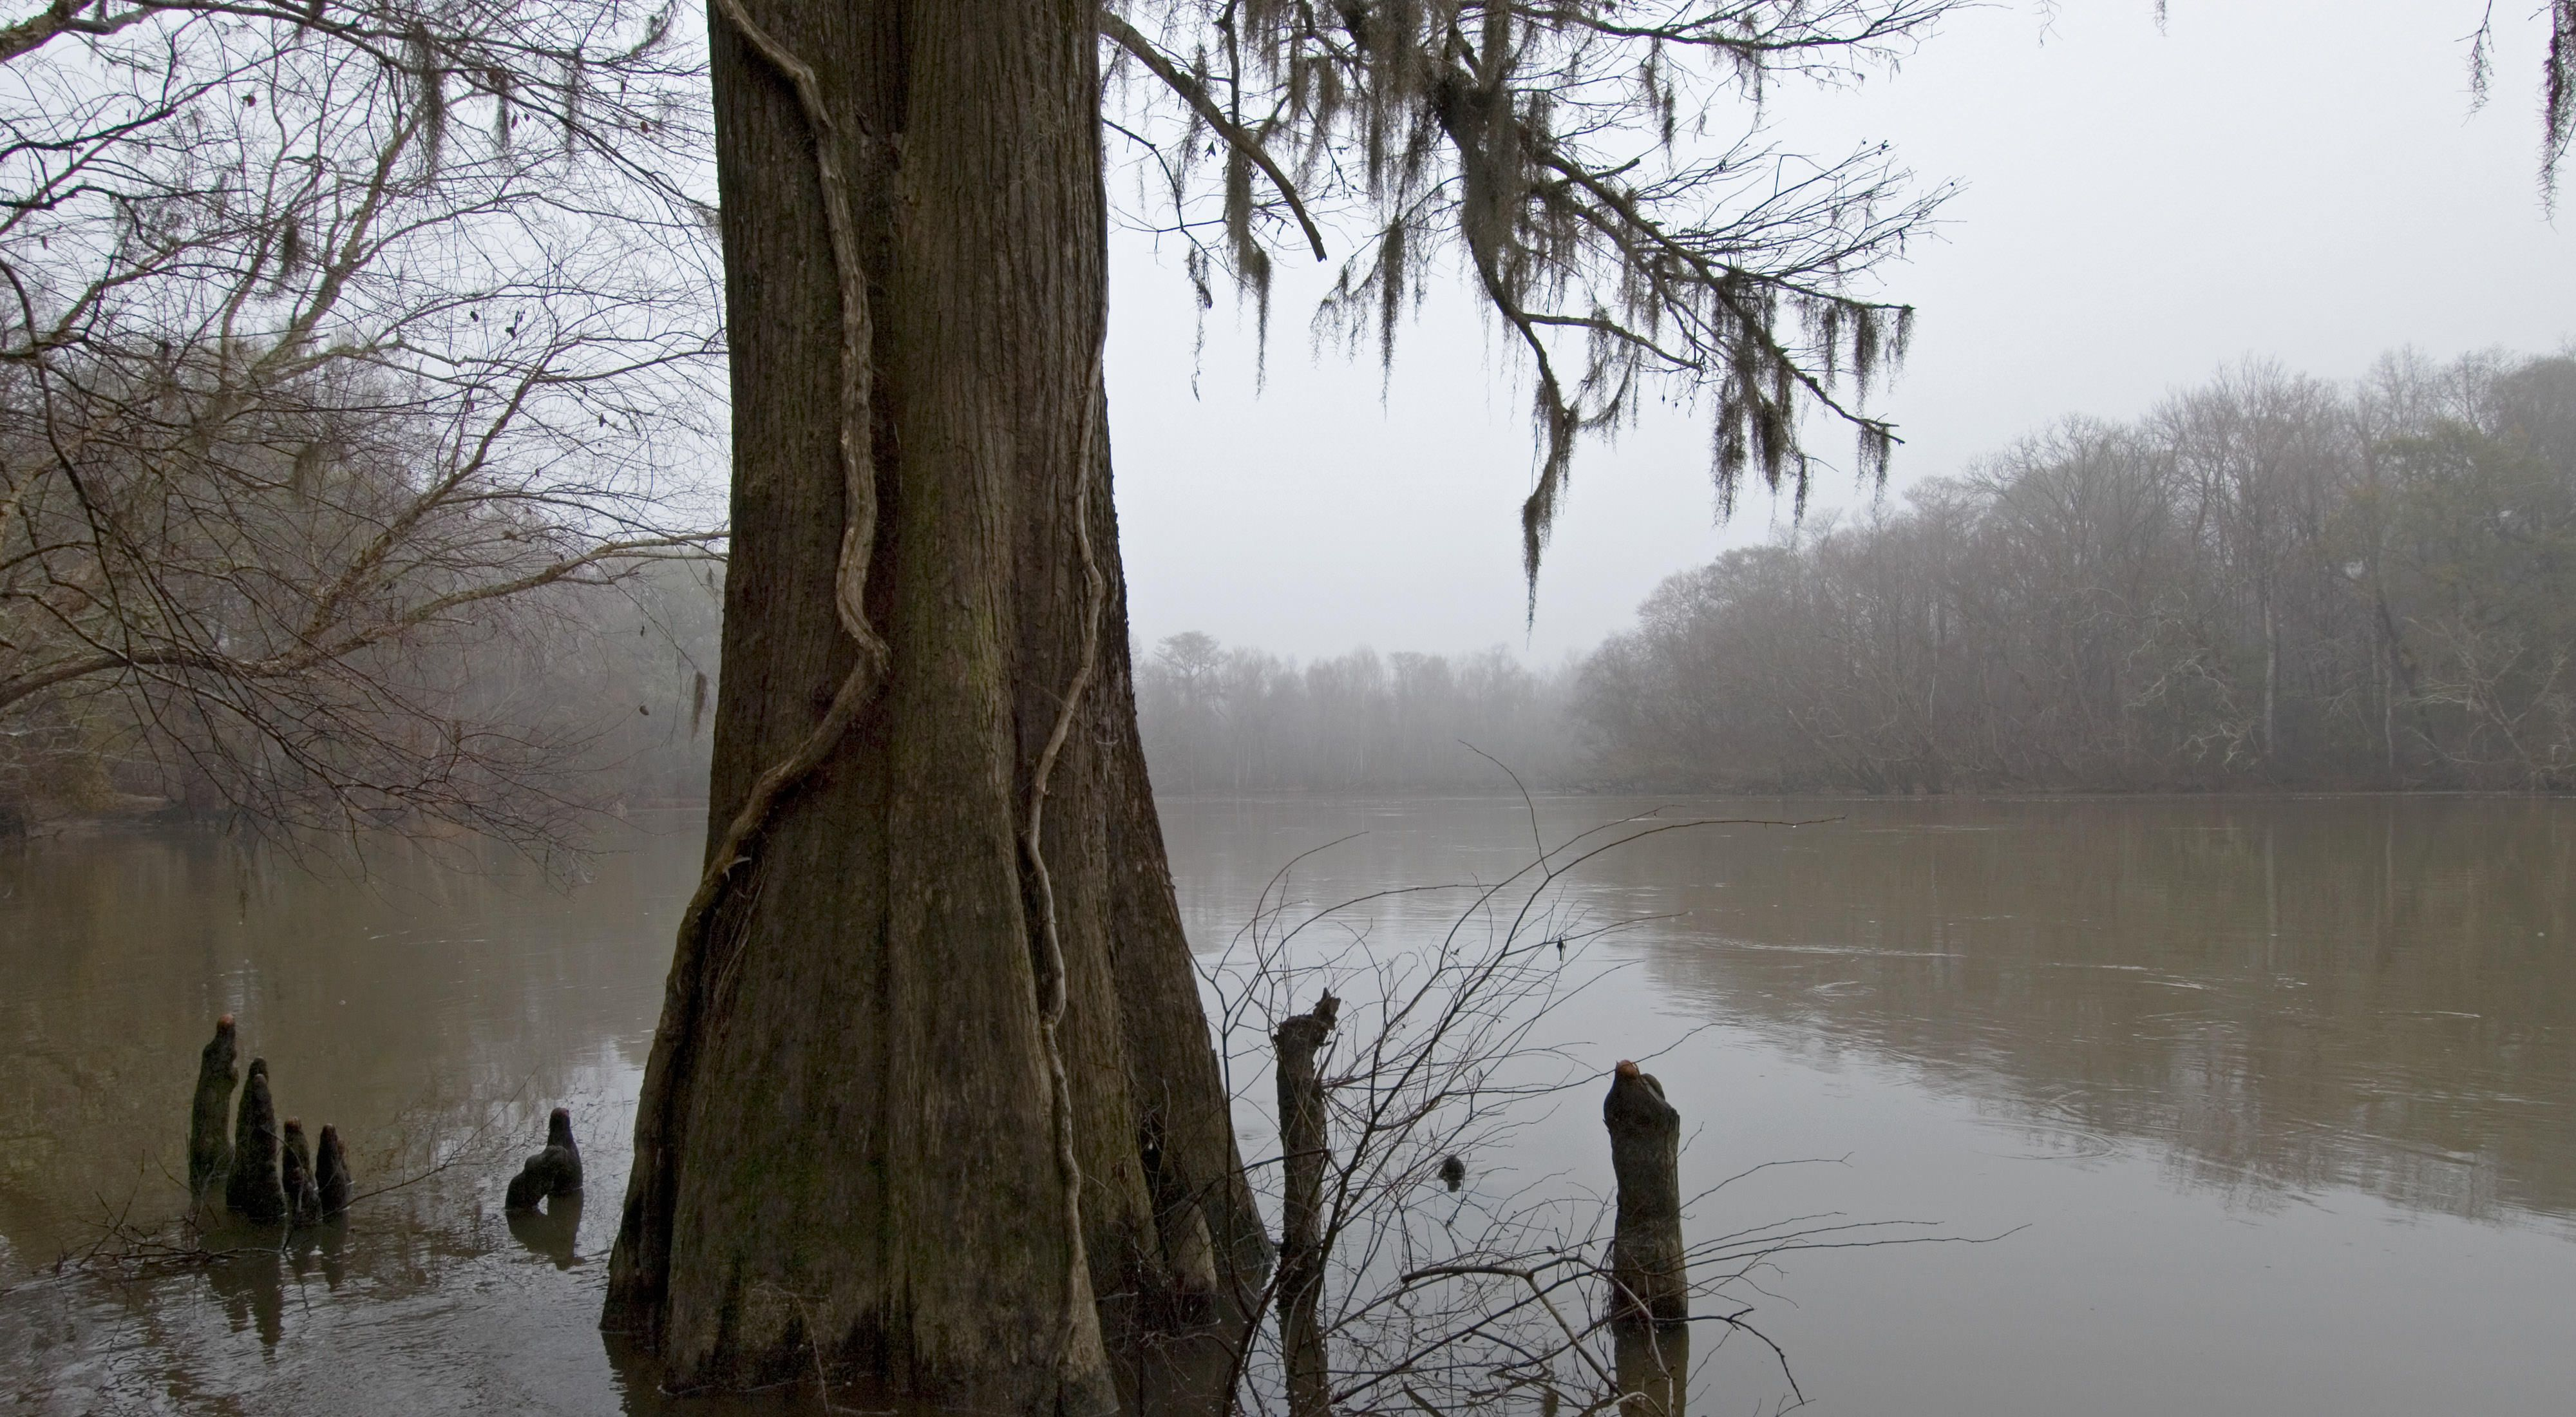 with hanging Spanish Moss is silhouetted by the shroud of winter morning fog that obscures the banks of the Great Pee Dee River.